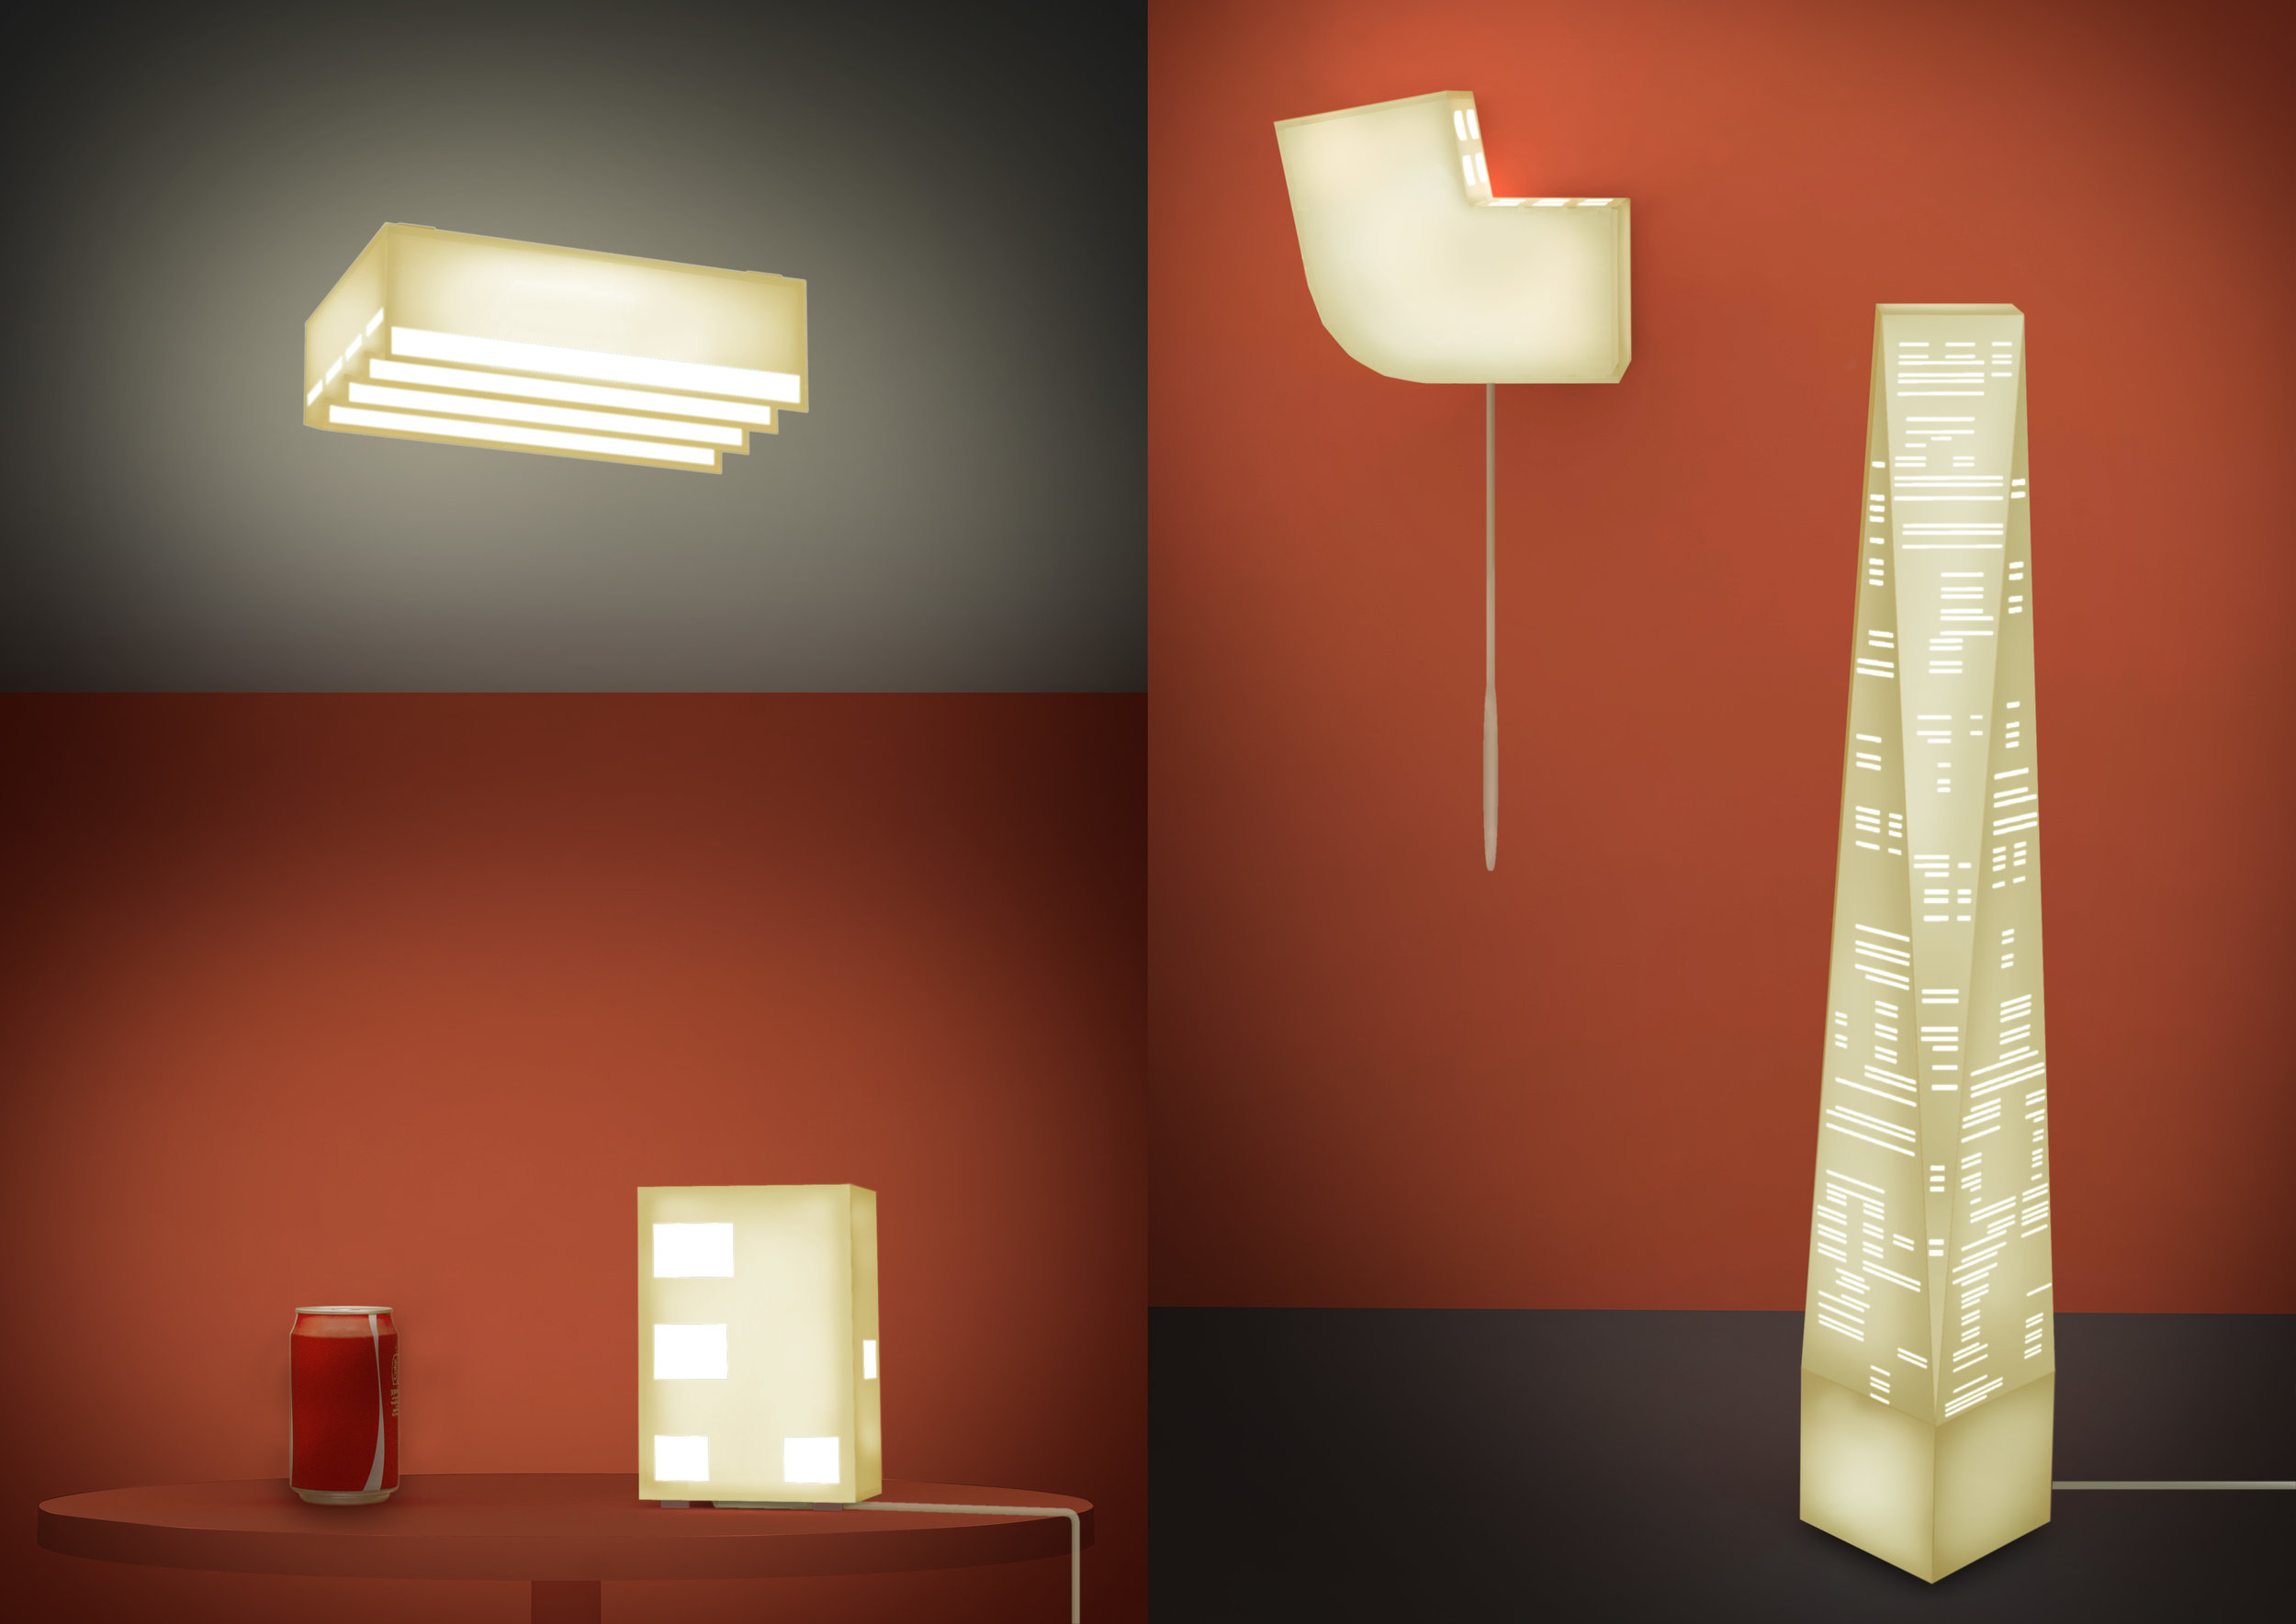 each lamp can be used as either ceiling, floor, wall or table lamp. lights on